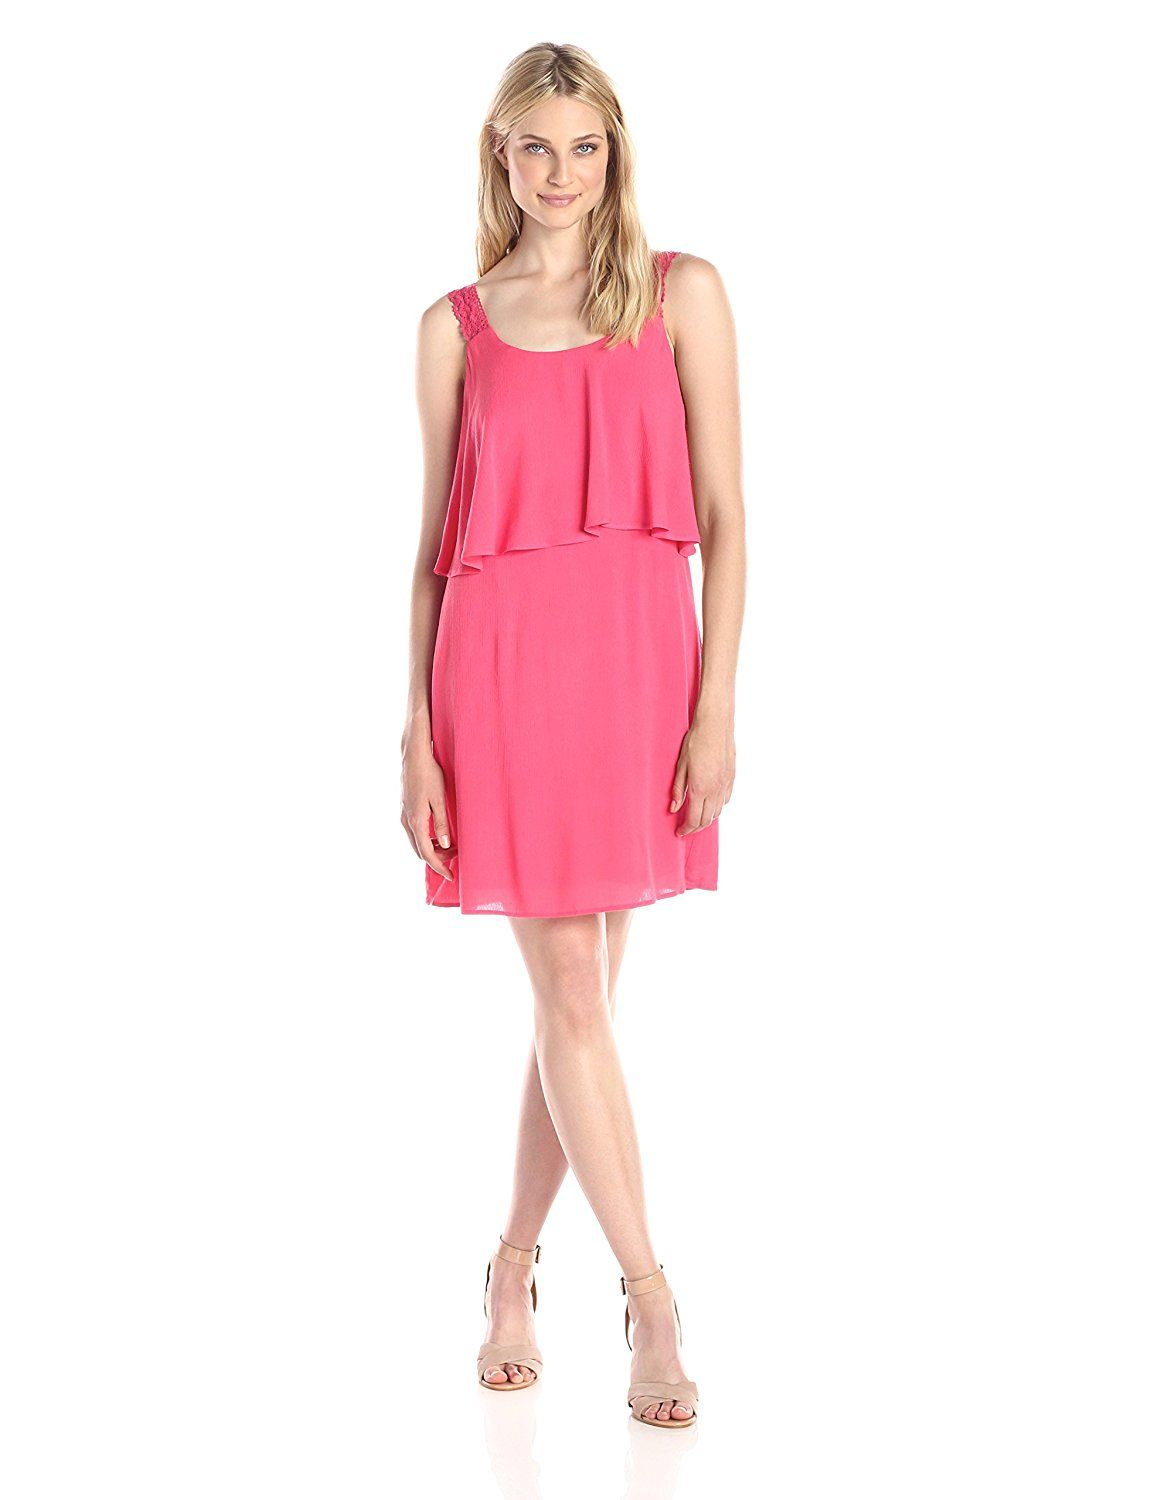 Sl sl fashion dresses - S L Fashions Women S Cotton Pop Over Startling Review Available Here Women S Dresses